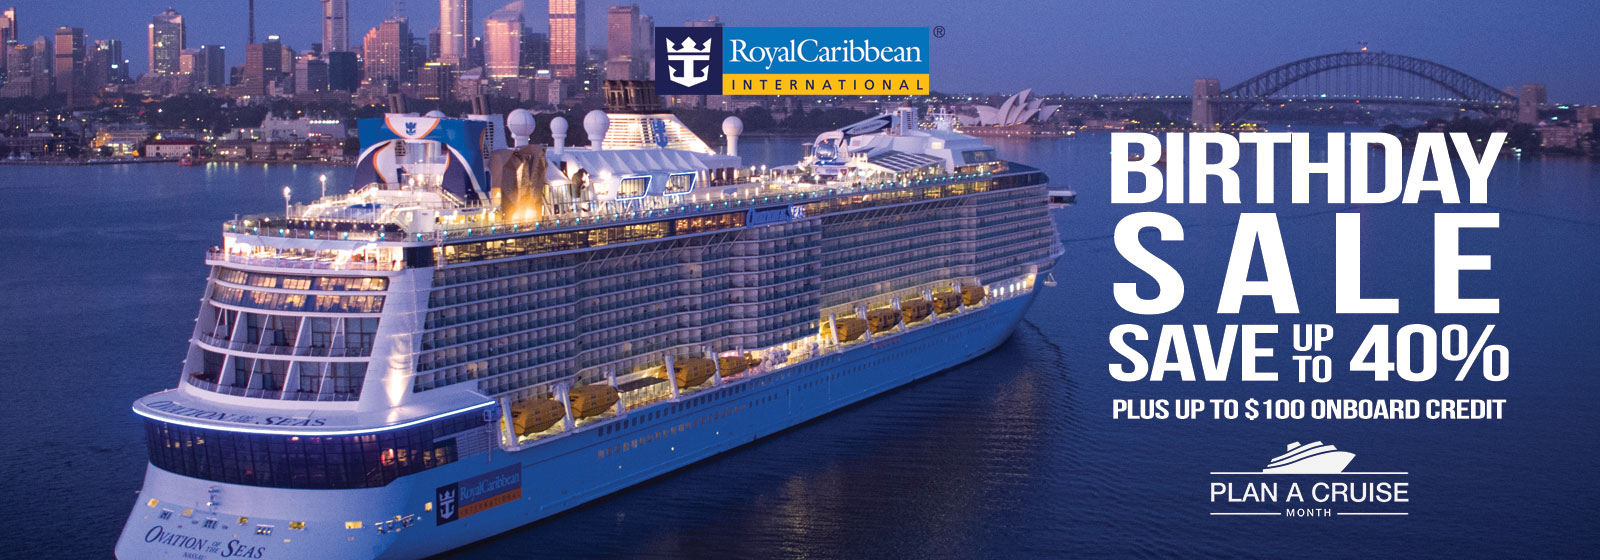 Royal Caribbean Birthday Sale